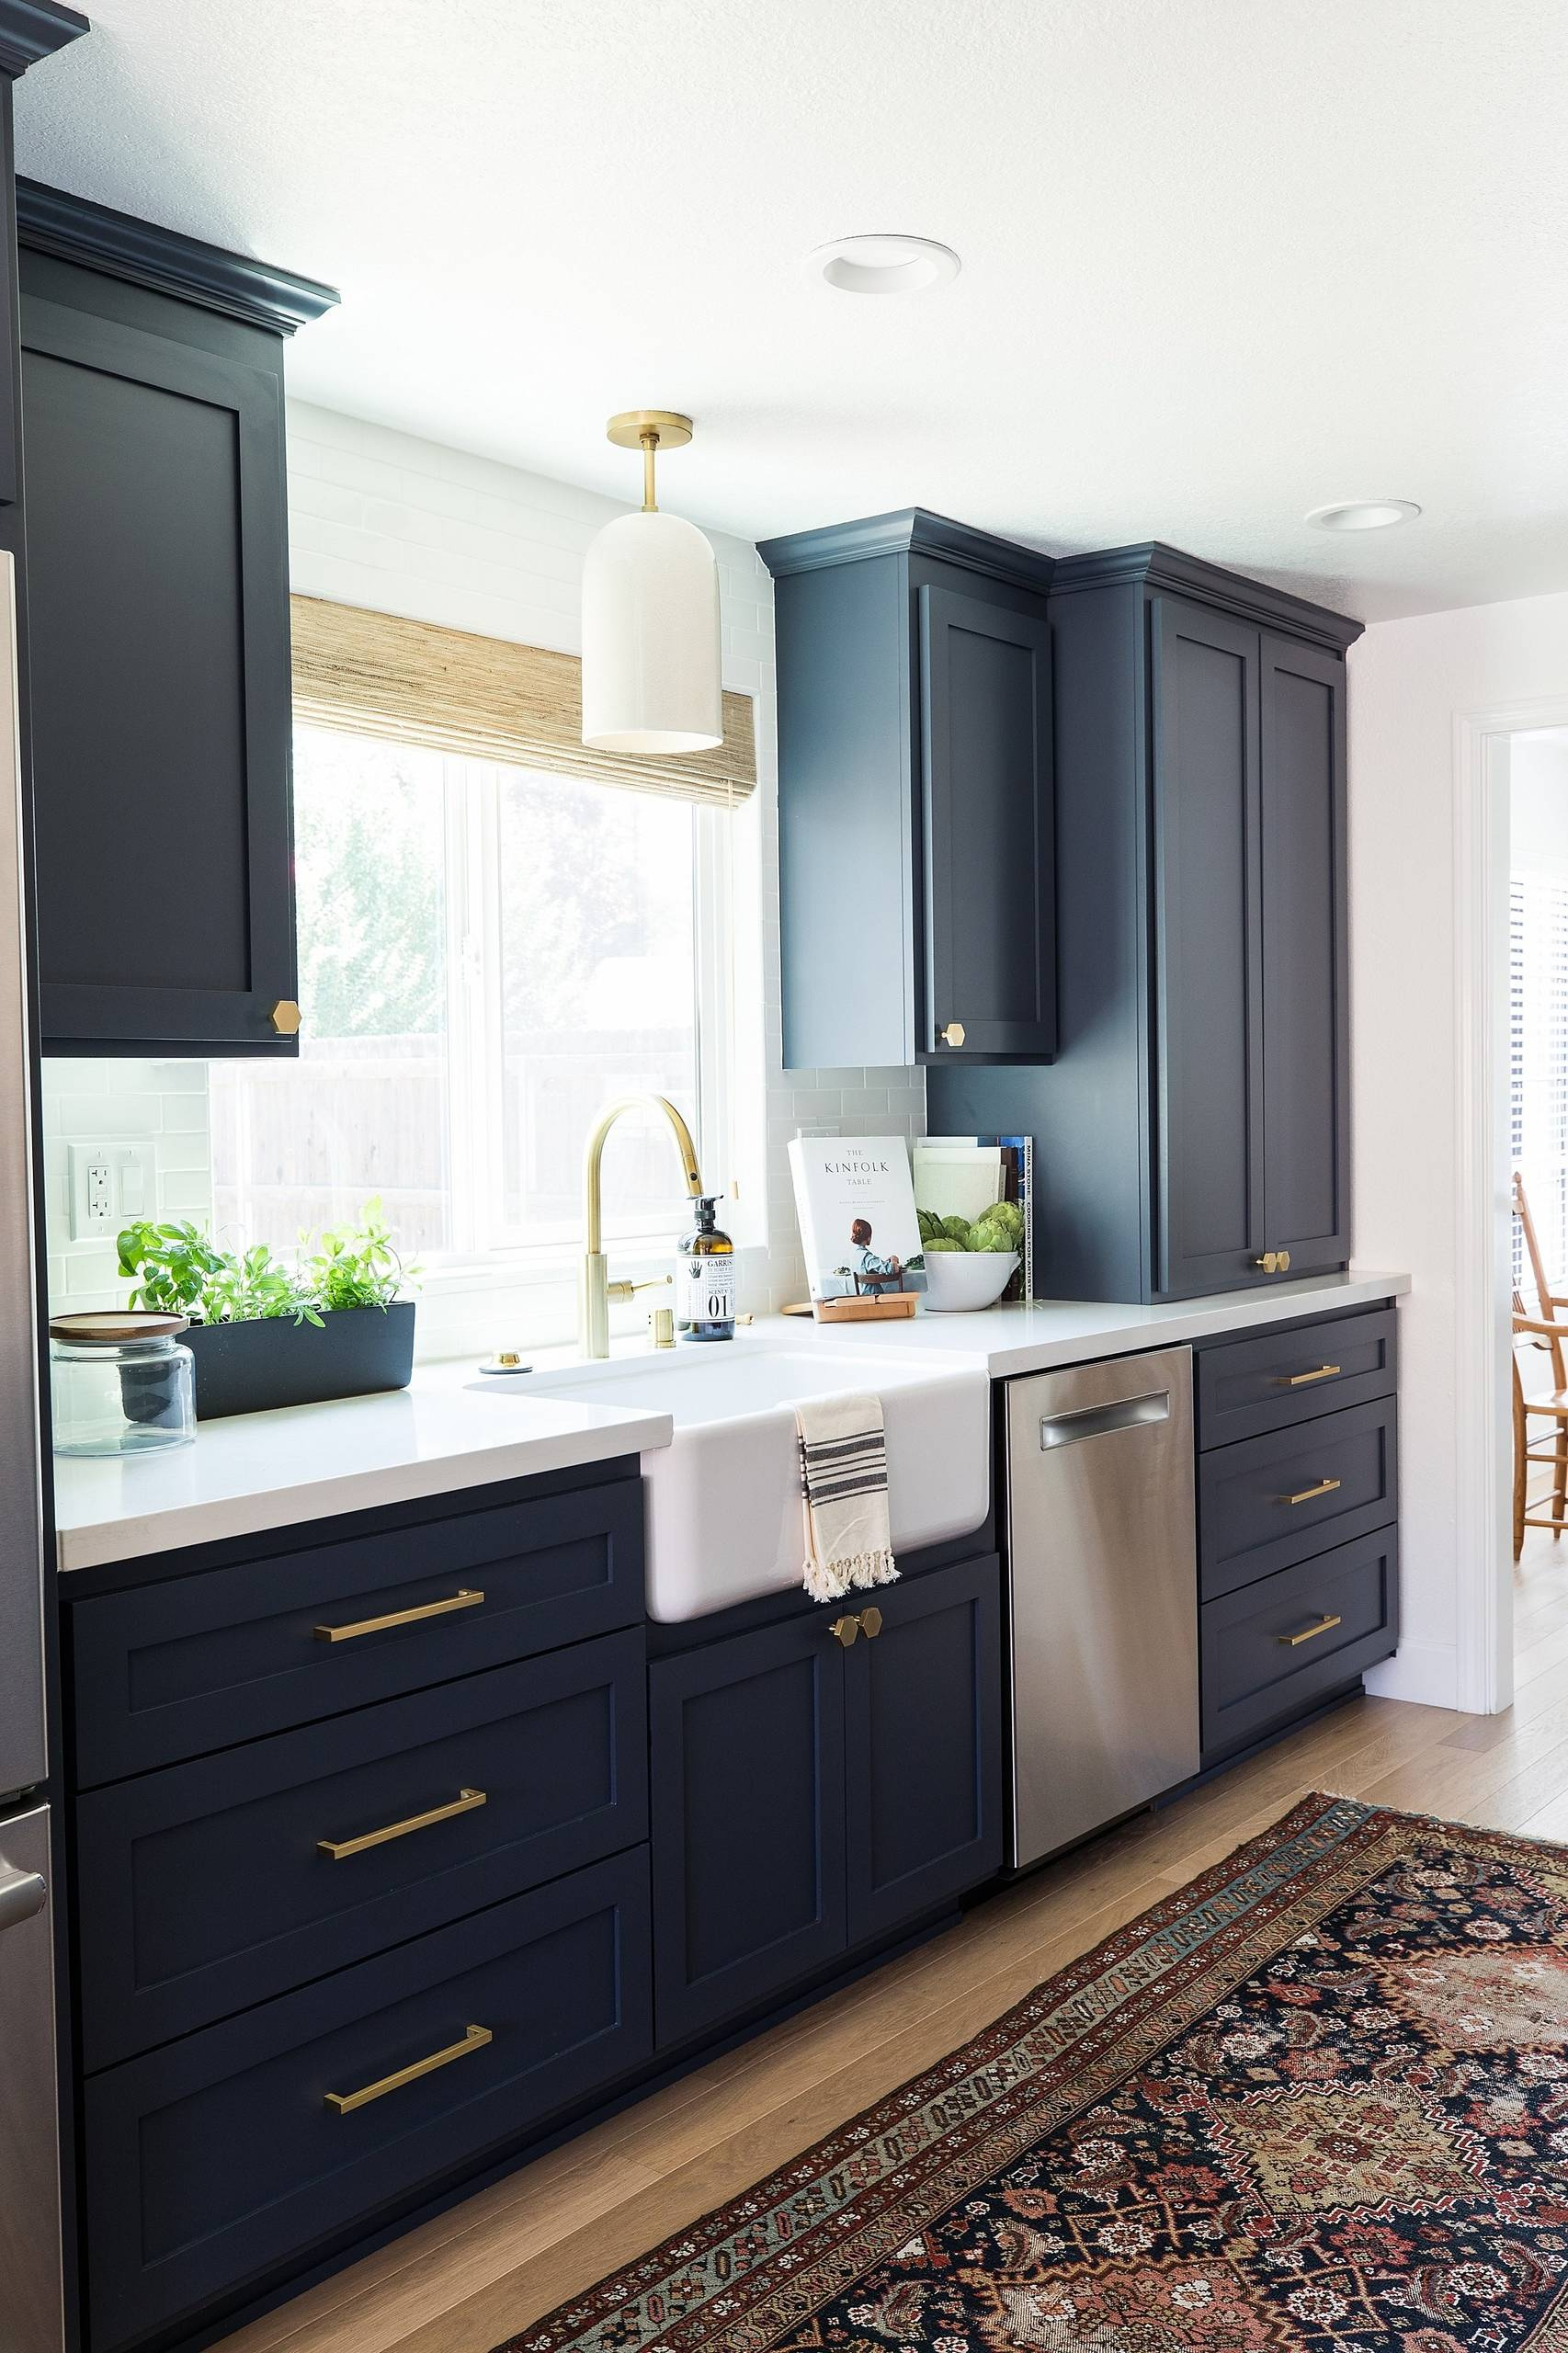 75 Beautiful Kitchen With Black Cabinets Pictures Ideas October 2020 Houzz